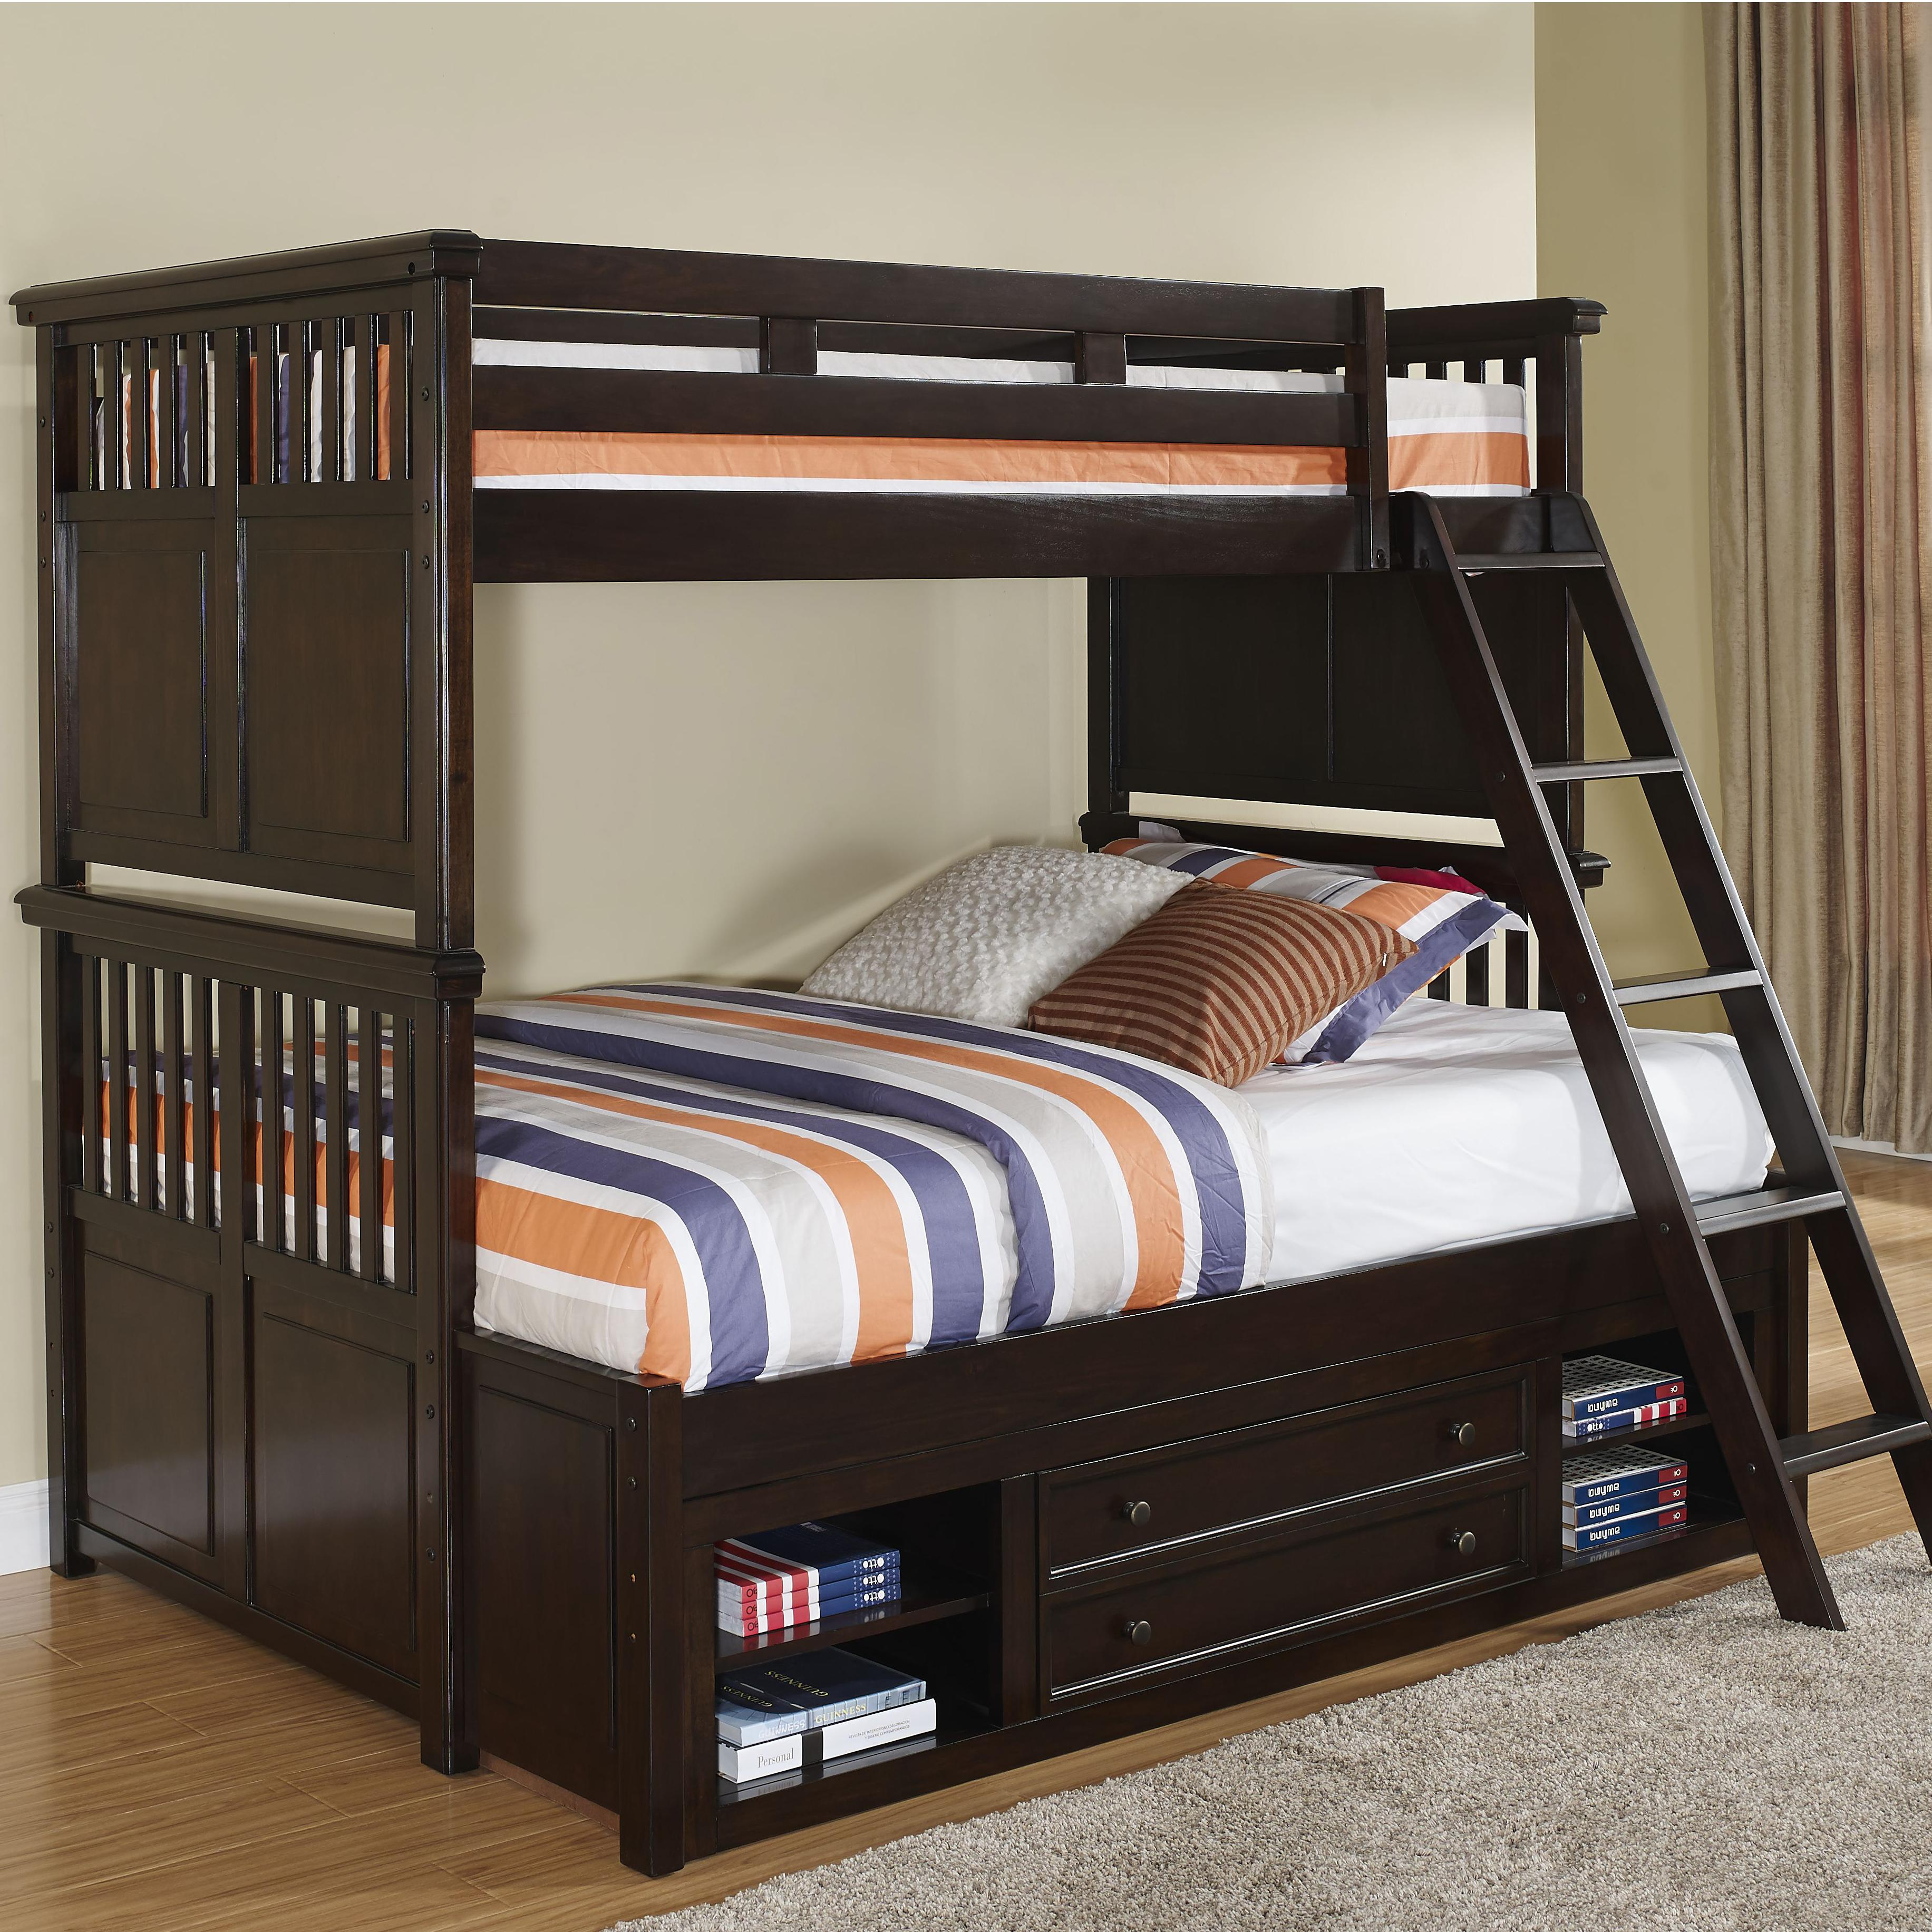 New Classic Canyon Ridge Twin/Twin Bunk Bed with Storage - Item Number: 05-230-518-538-598